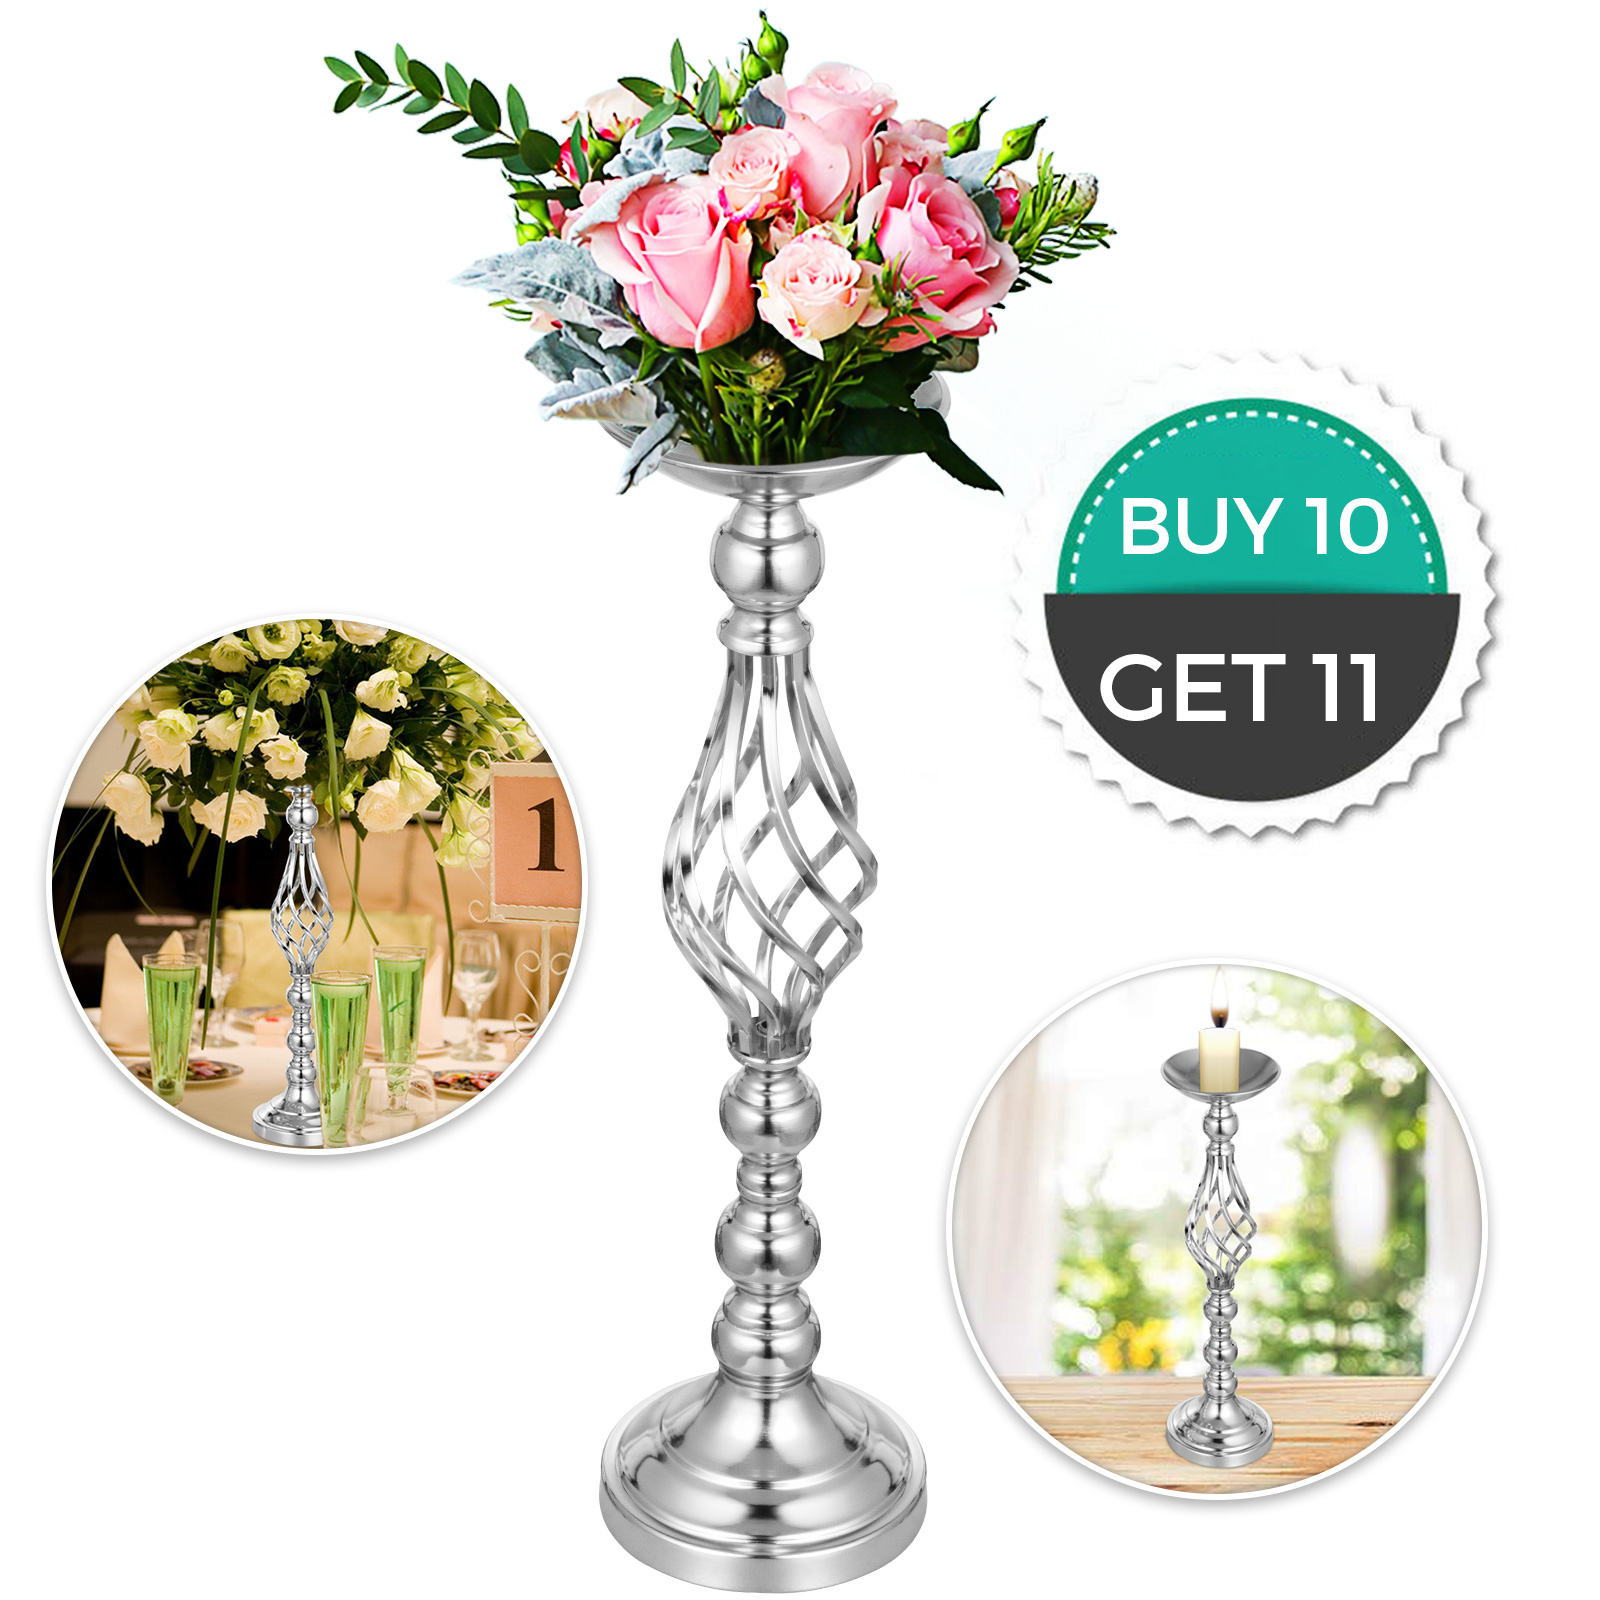 Flower-Rack-for-Wedding-Metal-Candle-Stand-4-11pcs-Centerpiece-Flower-Vase thumbnail 13